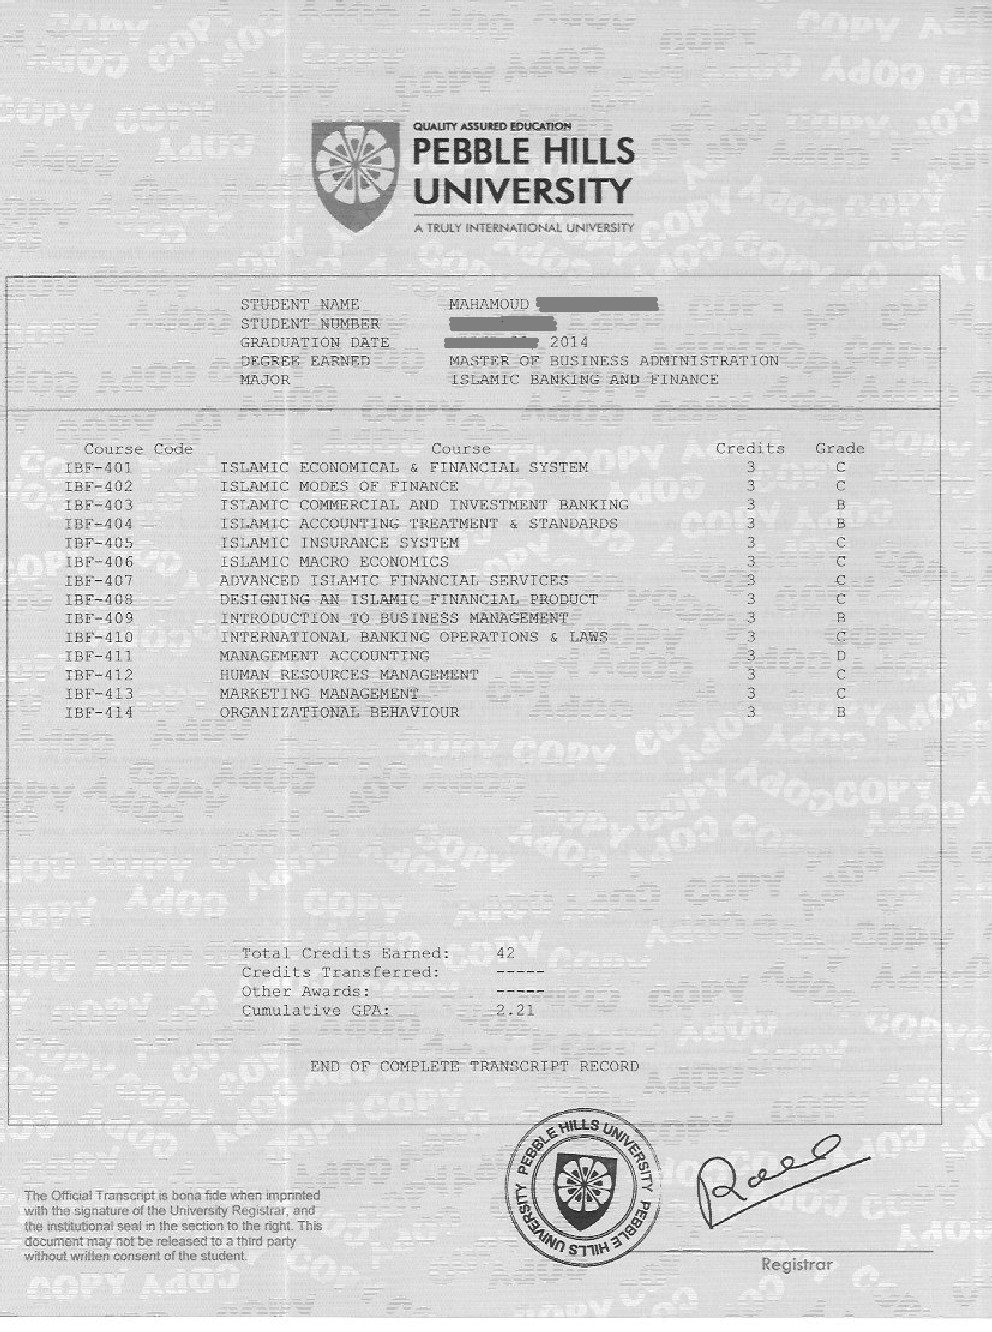 Sample academic transcript